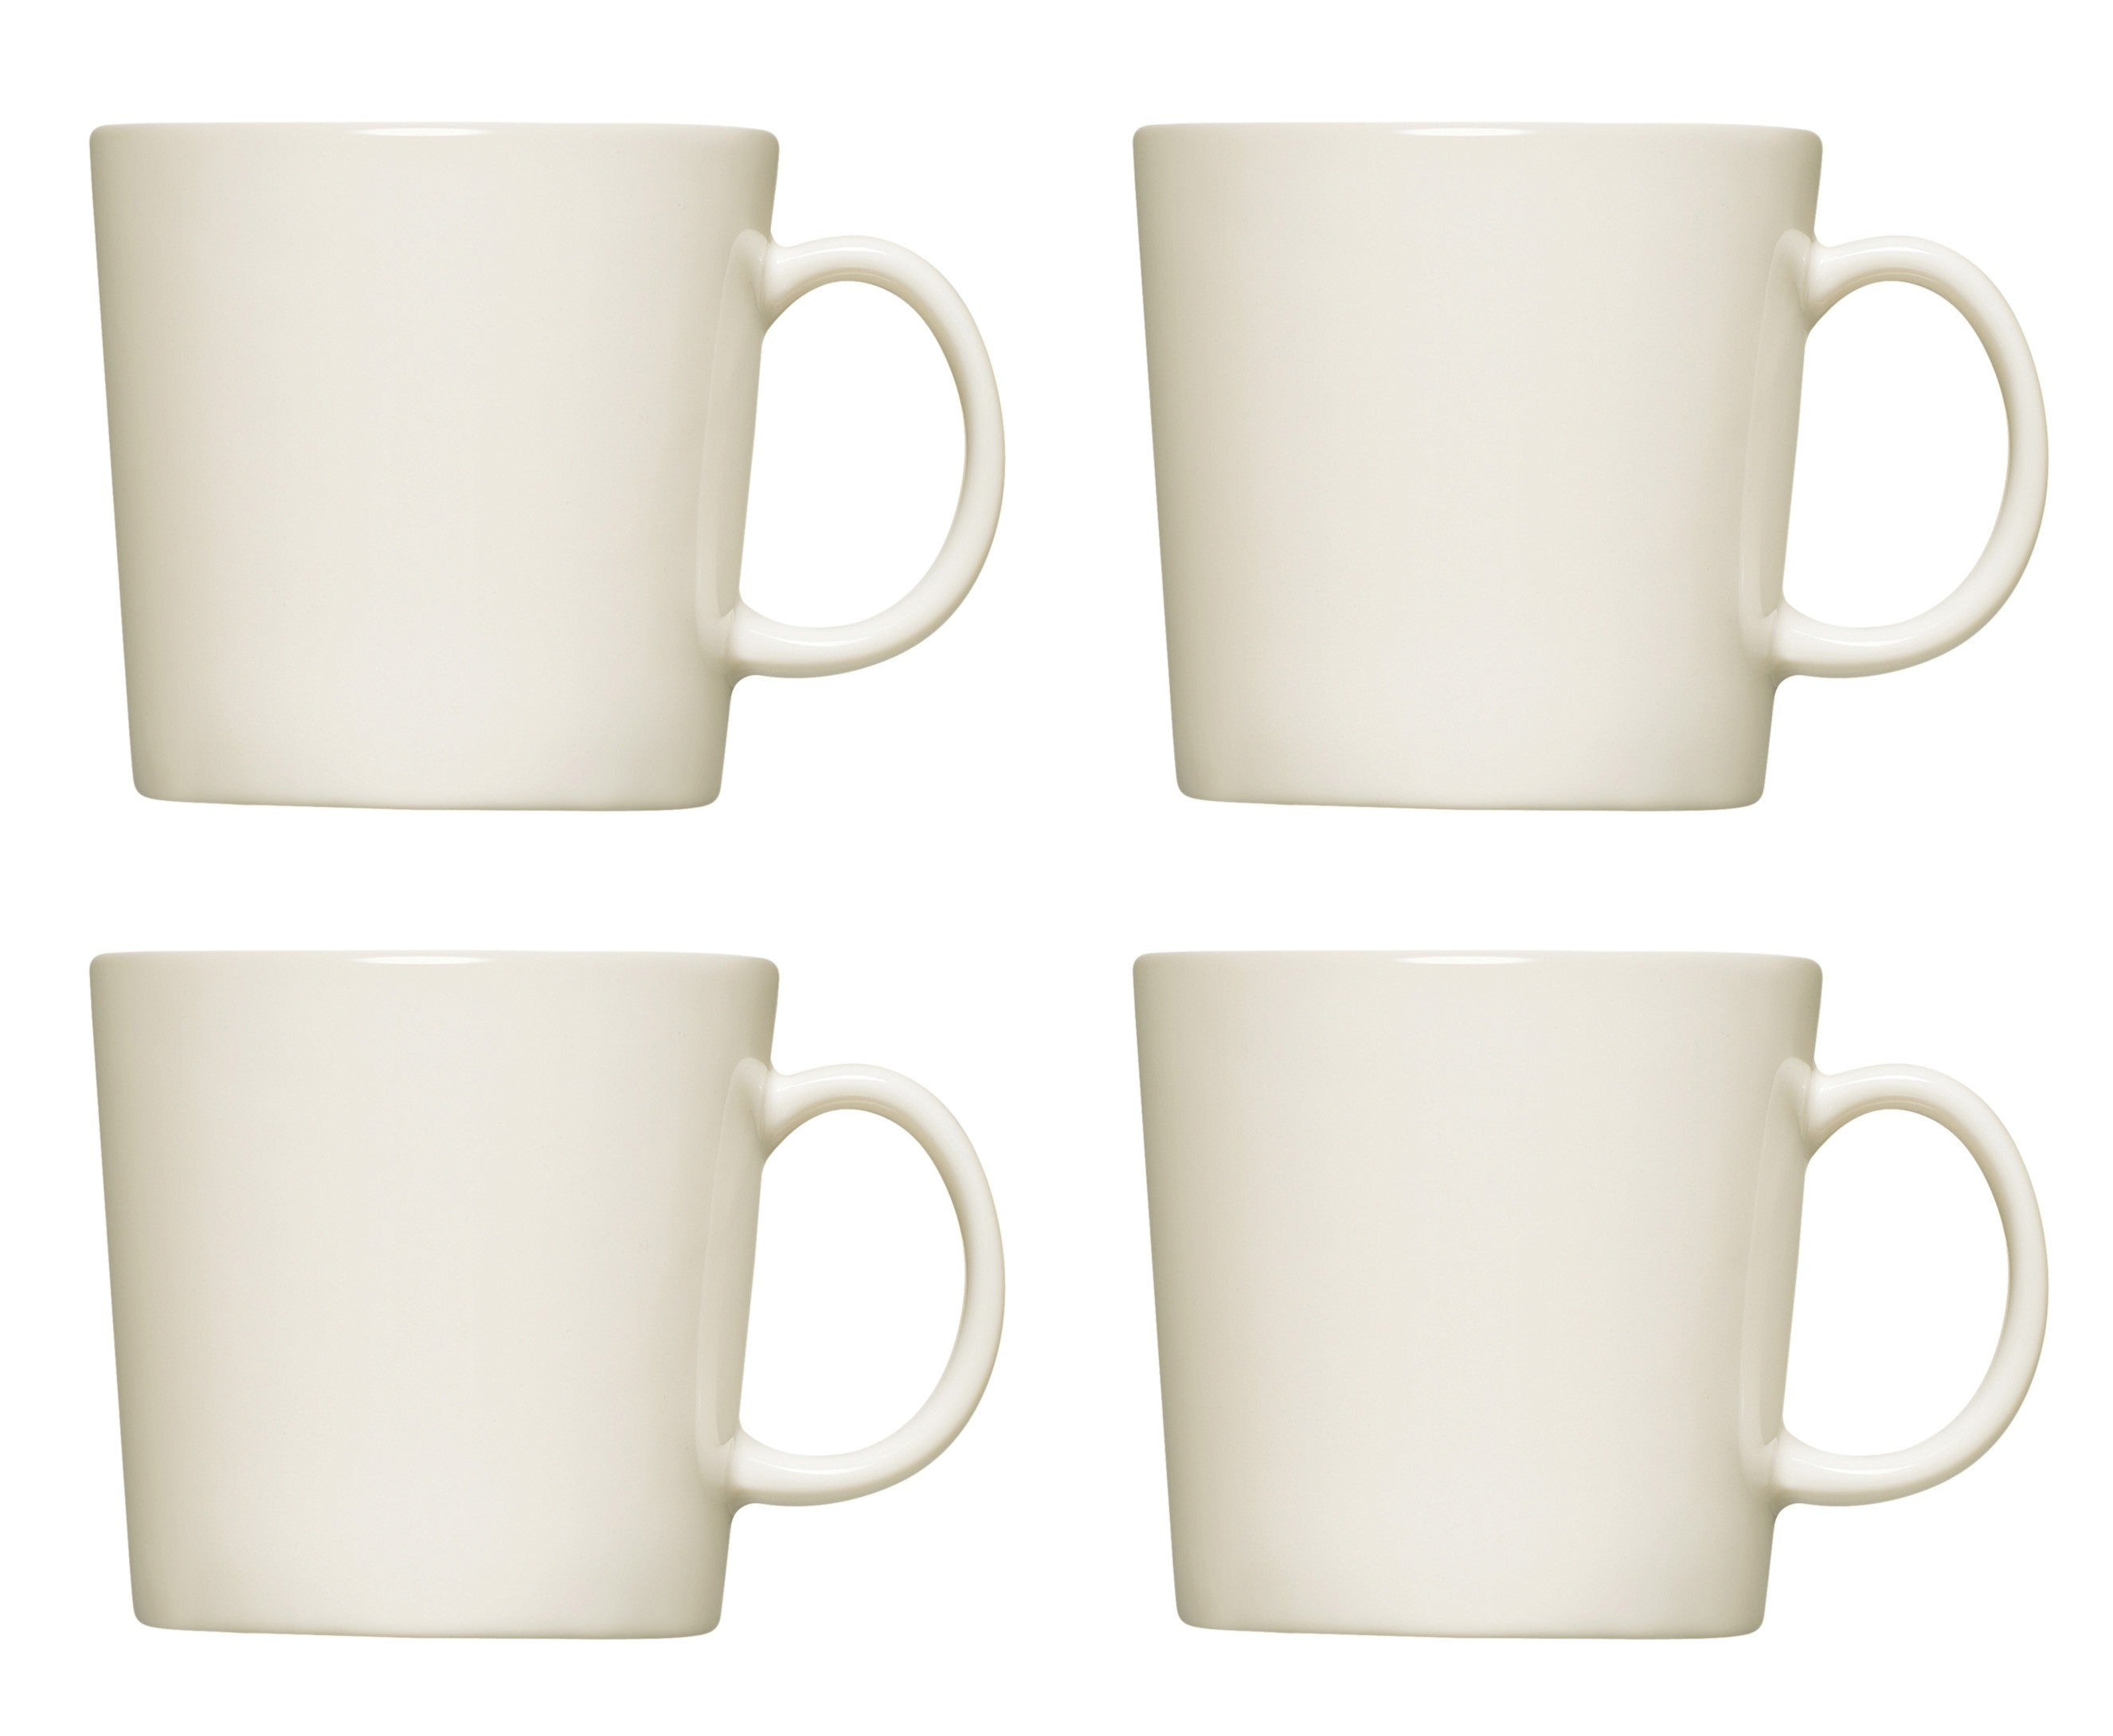 Teema Mug set 4 pcs 10oz / 0.3l